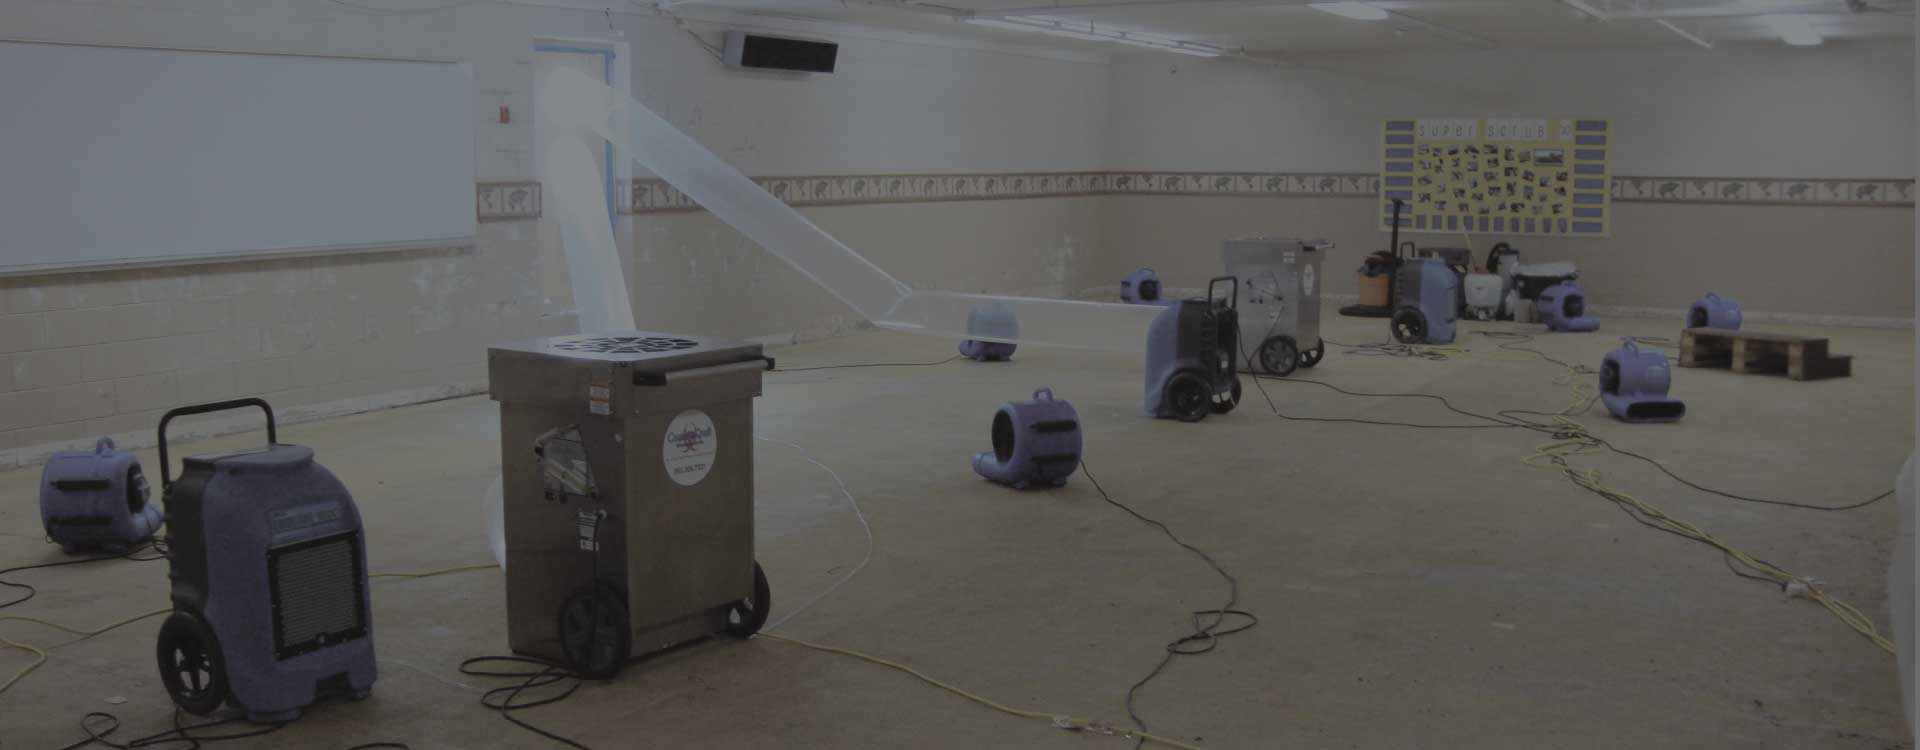 Commercial Water Damage Phoenix